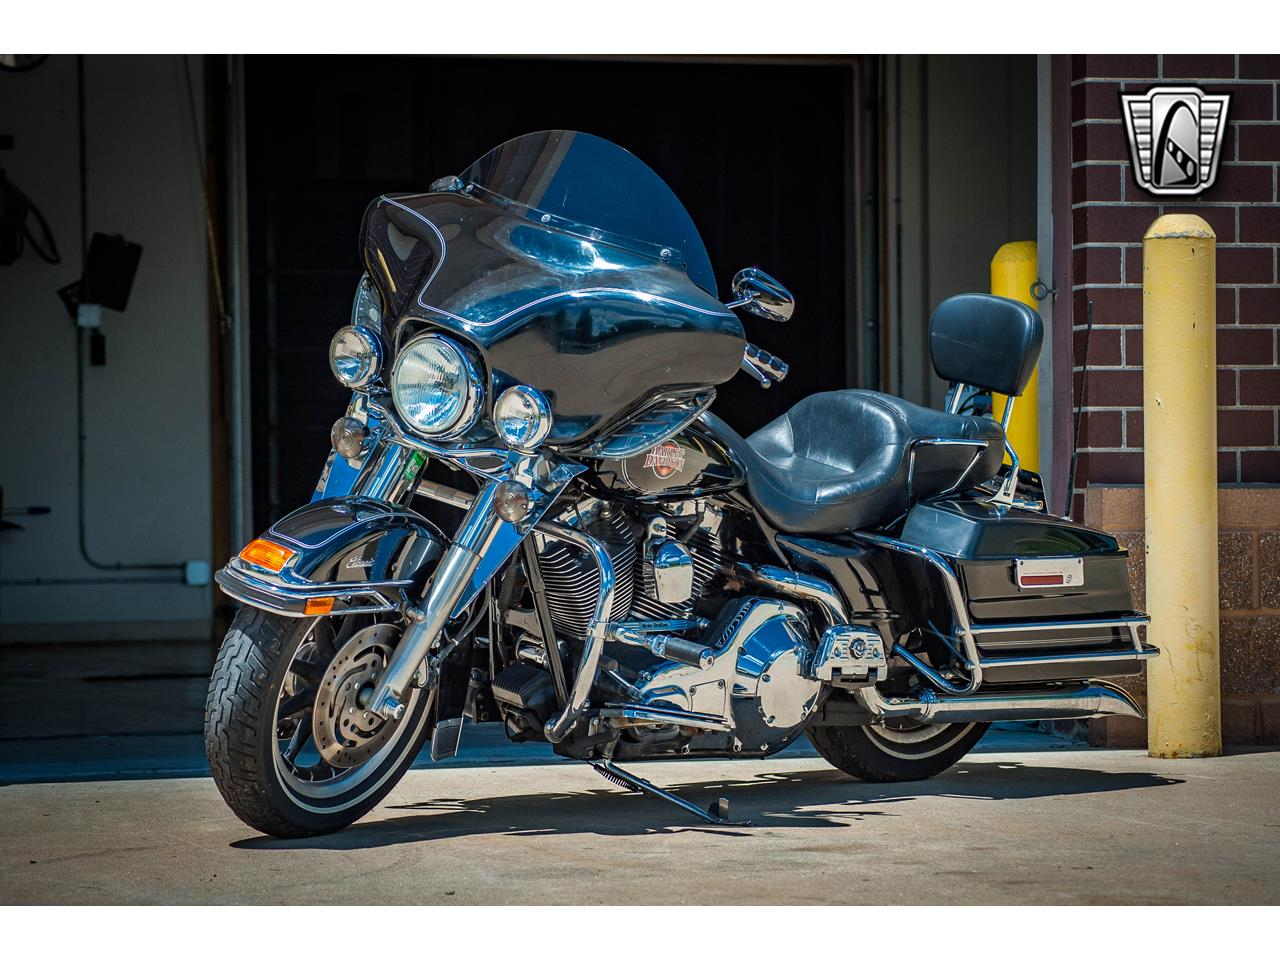 Large Picture of 2004 Motorcycle located in O'Fallon Illinois - $12,000.00 Offered by Gateway Classic Cars - St. Louis - QD6F